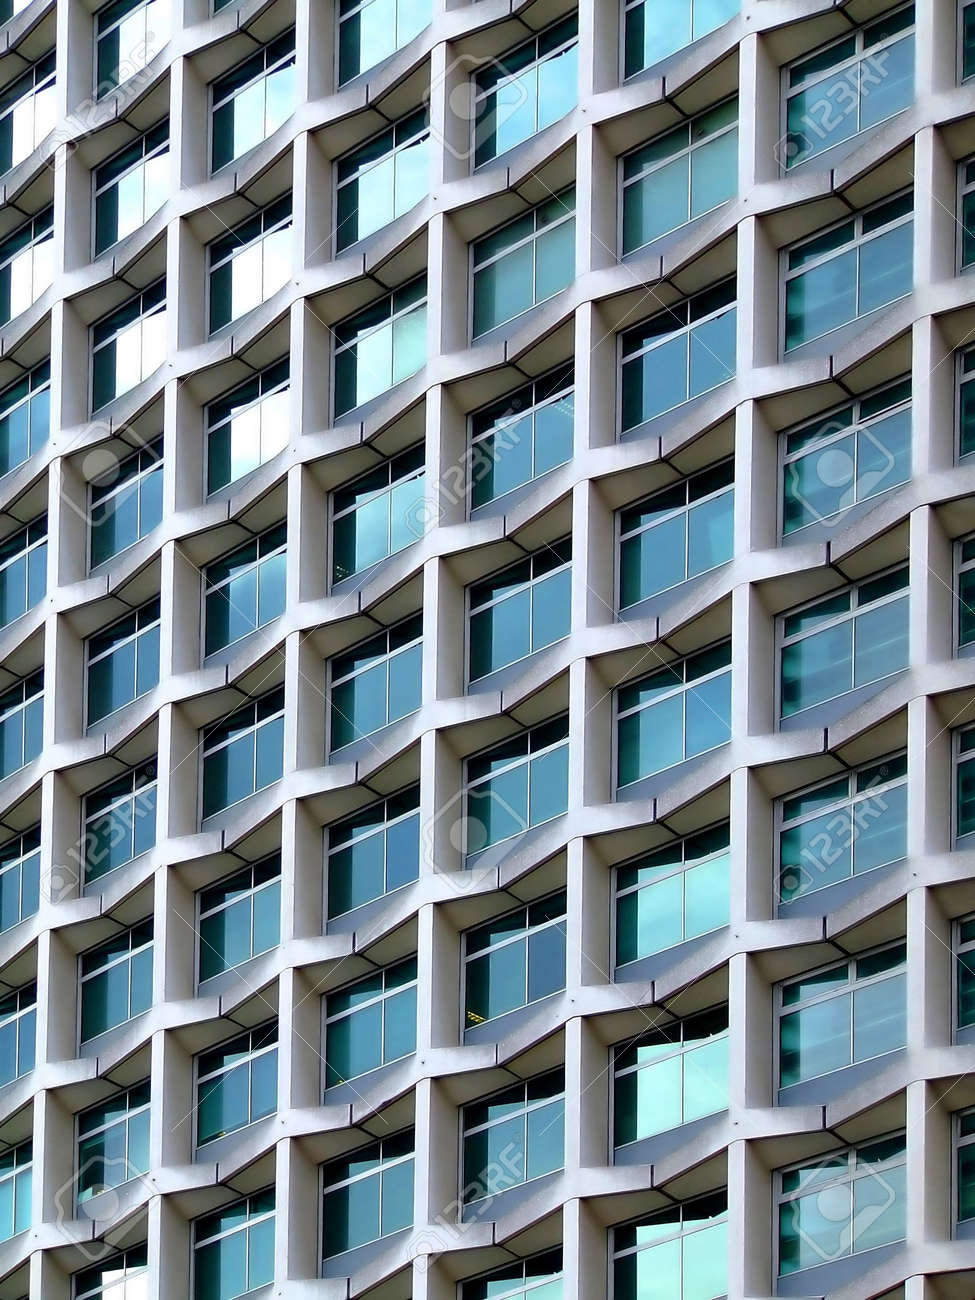 Modern Architecture Detail modern architecture building detail with square windows stock